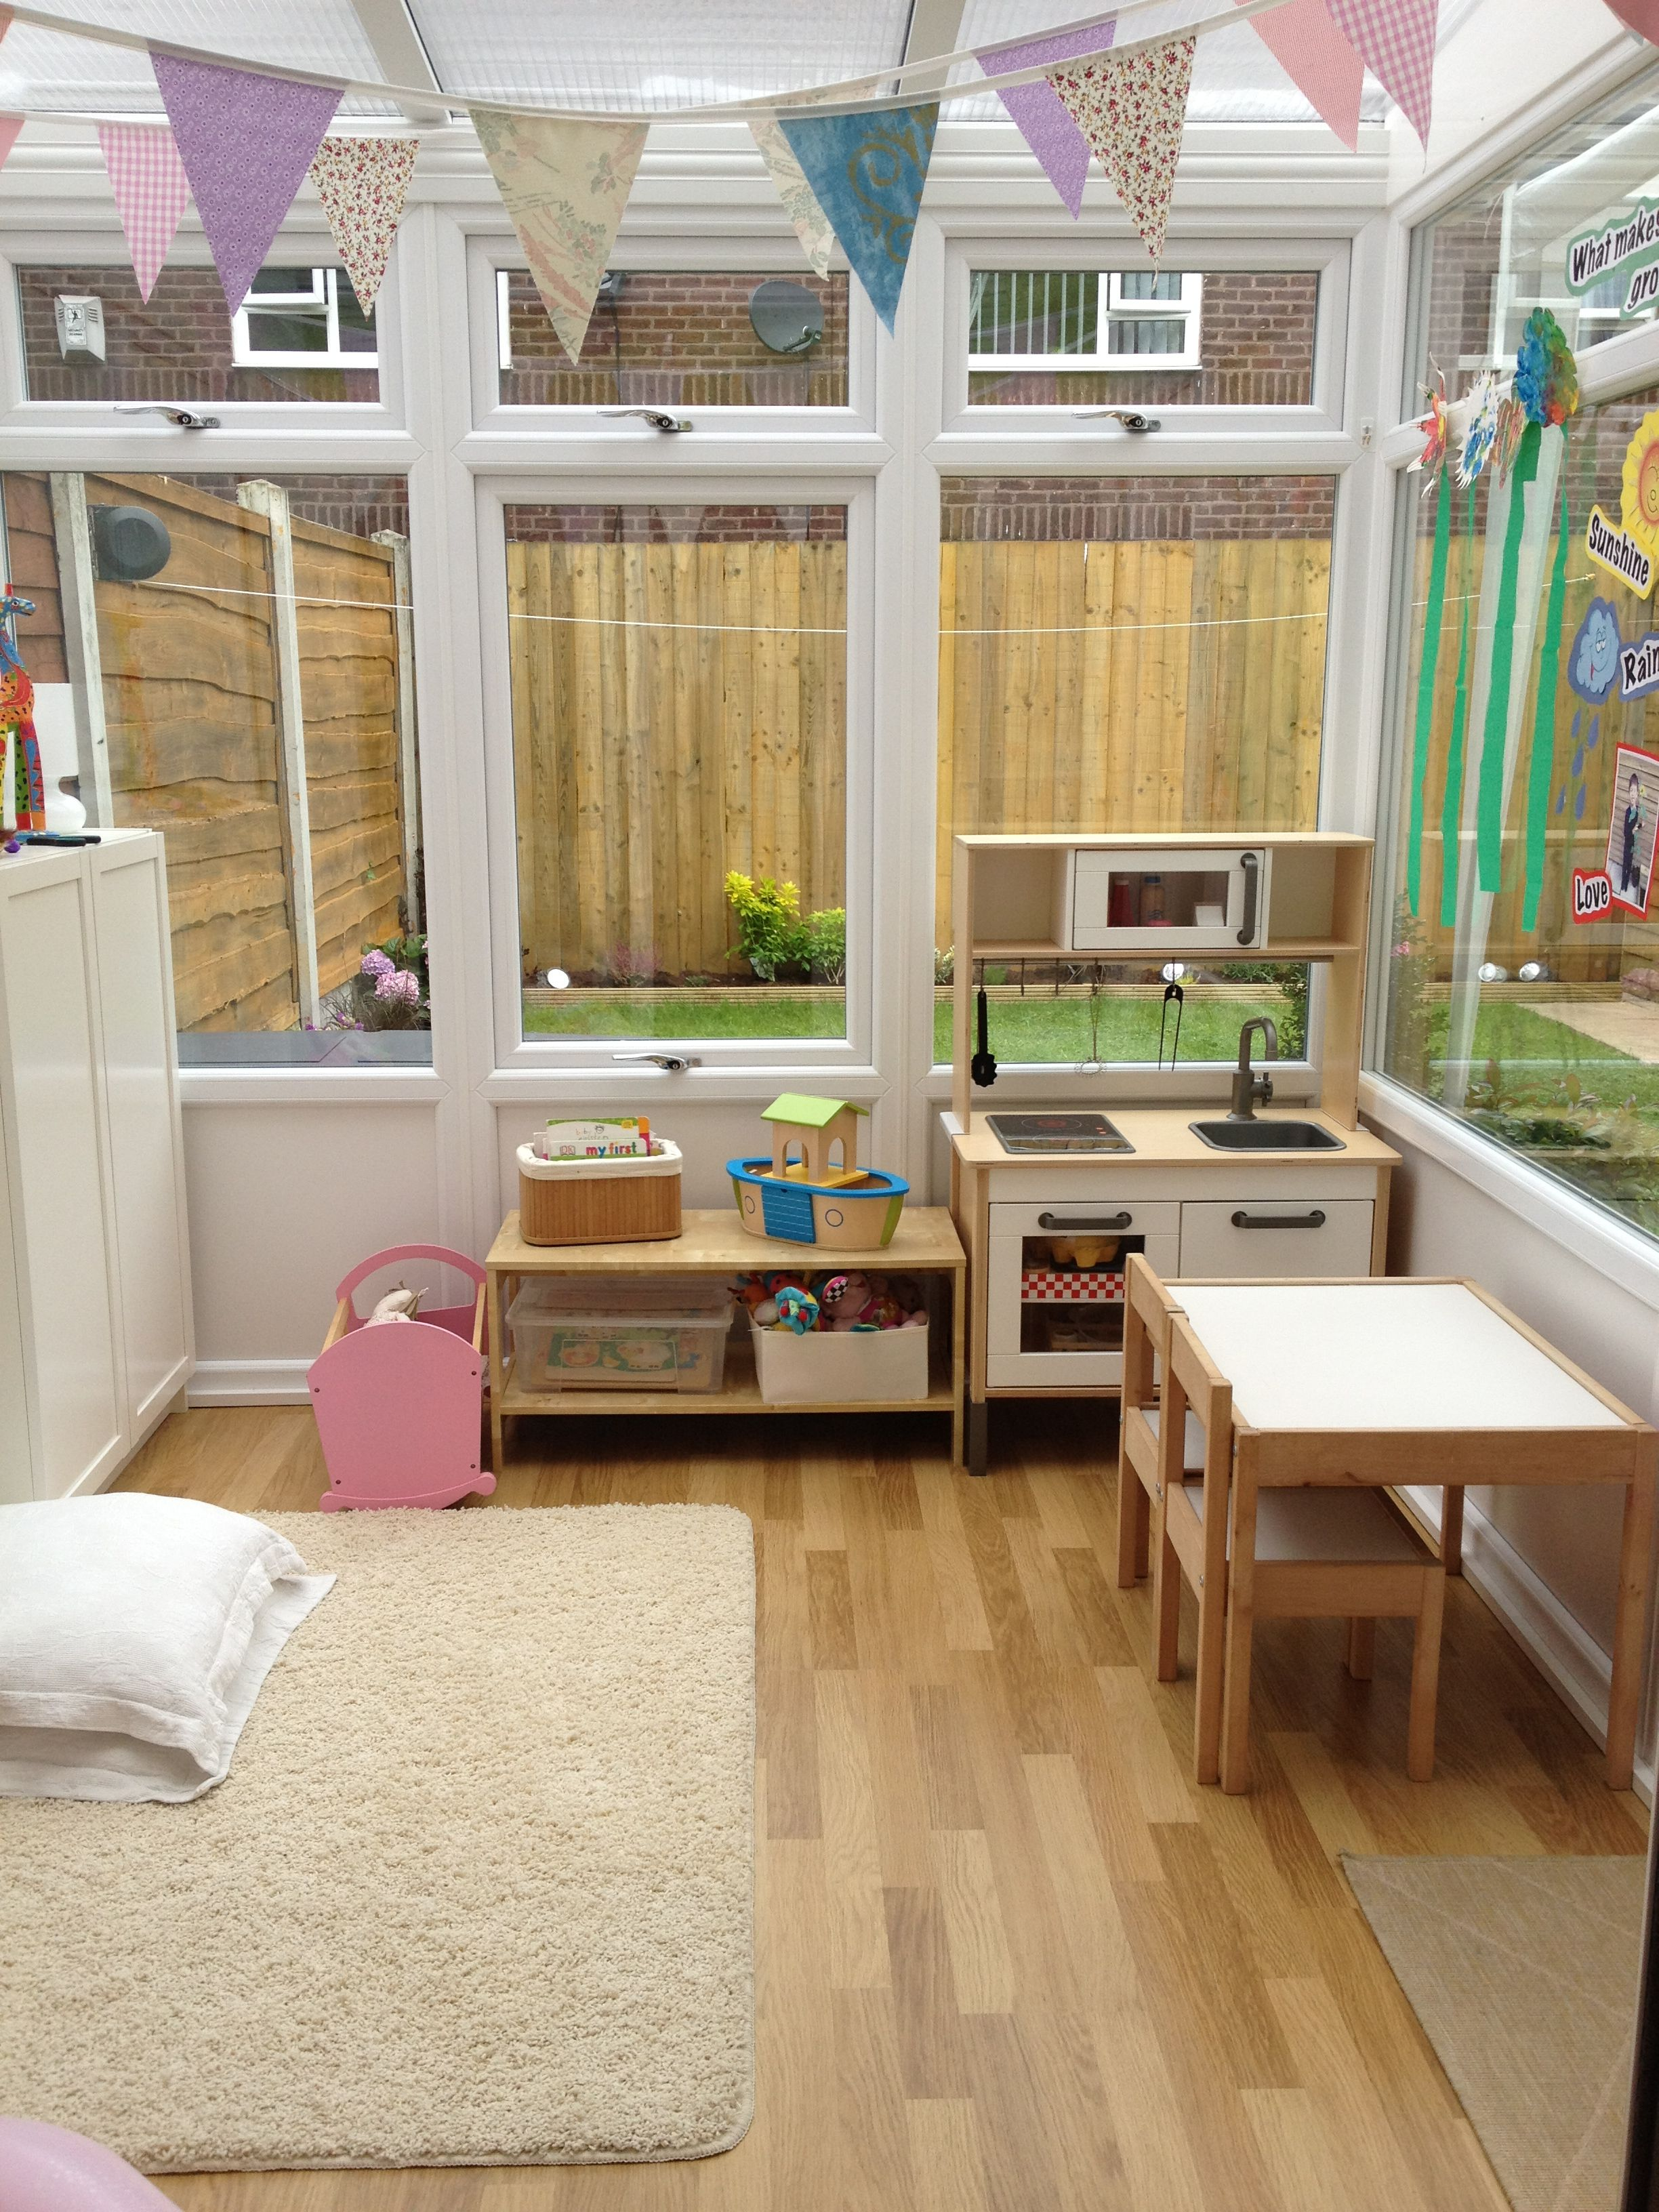 Conservatory Converted Into A Playroom Sunroom Playroom Small